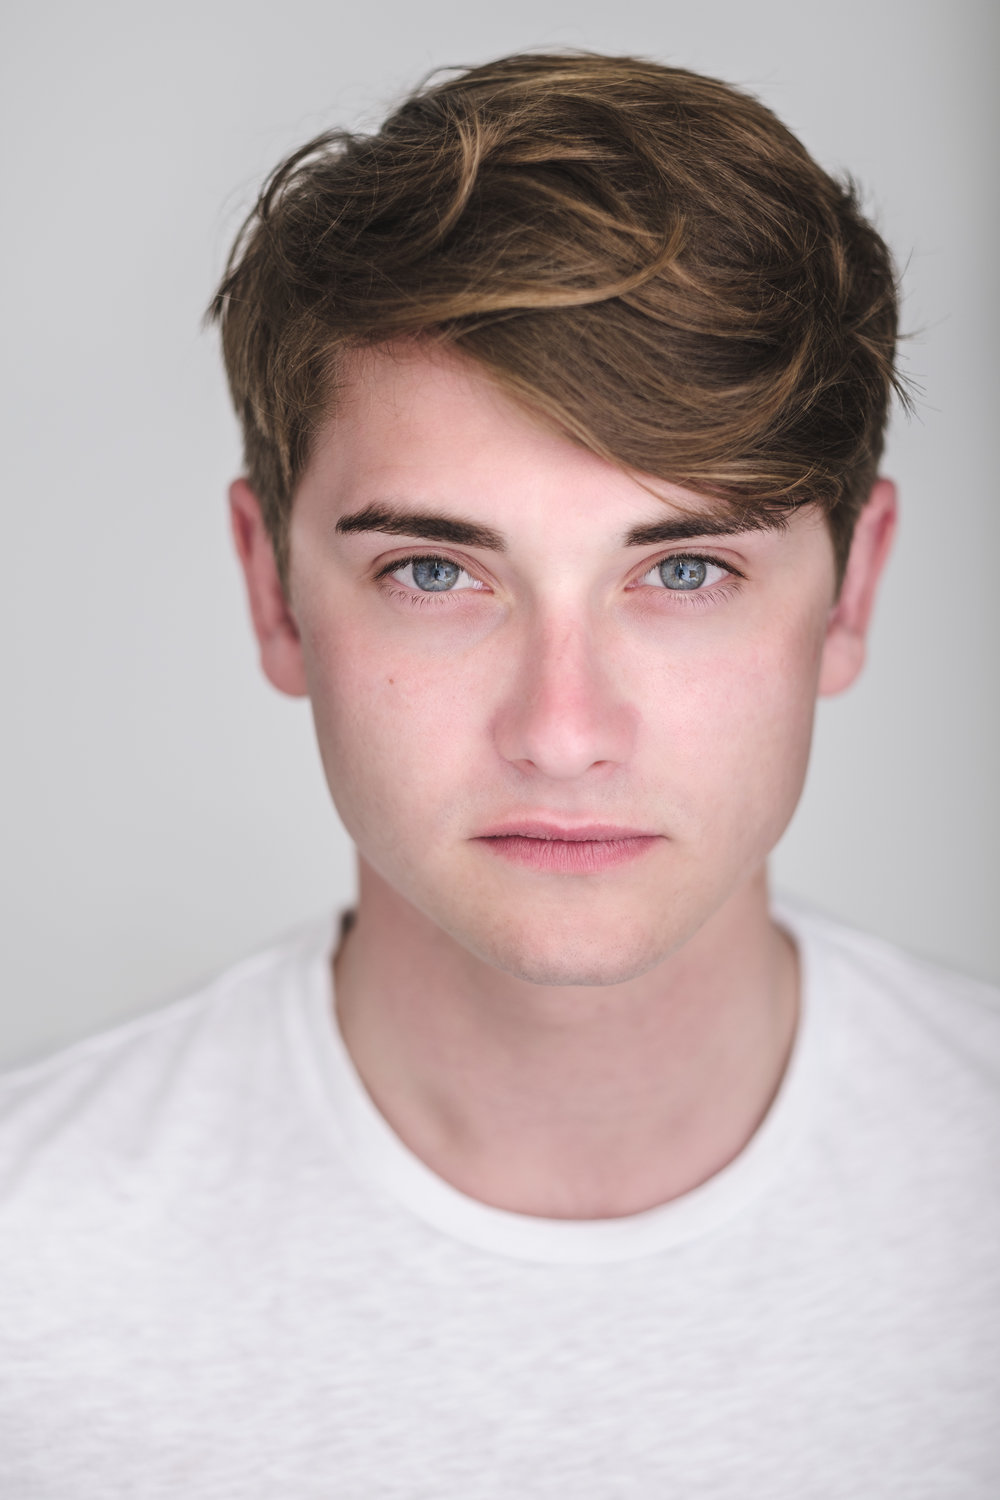 Josh Horrocks - Tommy  Josh graduated from Arts Educational School London in 2015. He recently worked on a production of  'The Winter's Tale' by William Shakespeare, directed by Glenn Neath. Josh is extremely excited to be a part of Lidless Theatre, and is looking forward to creating bold and brave theatre.